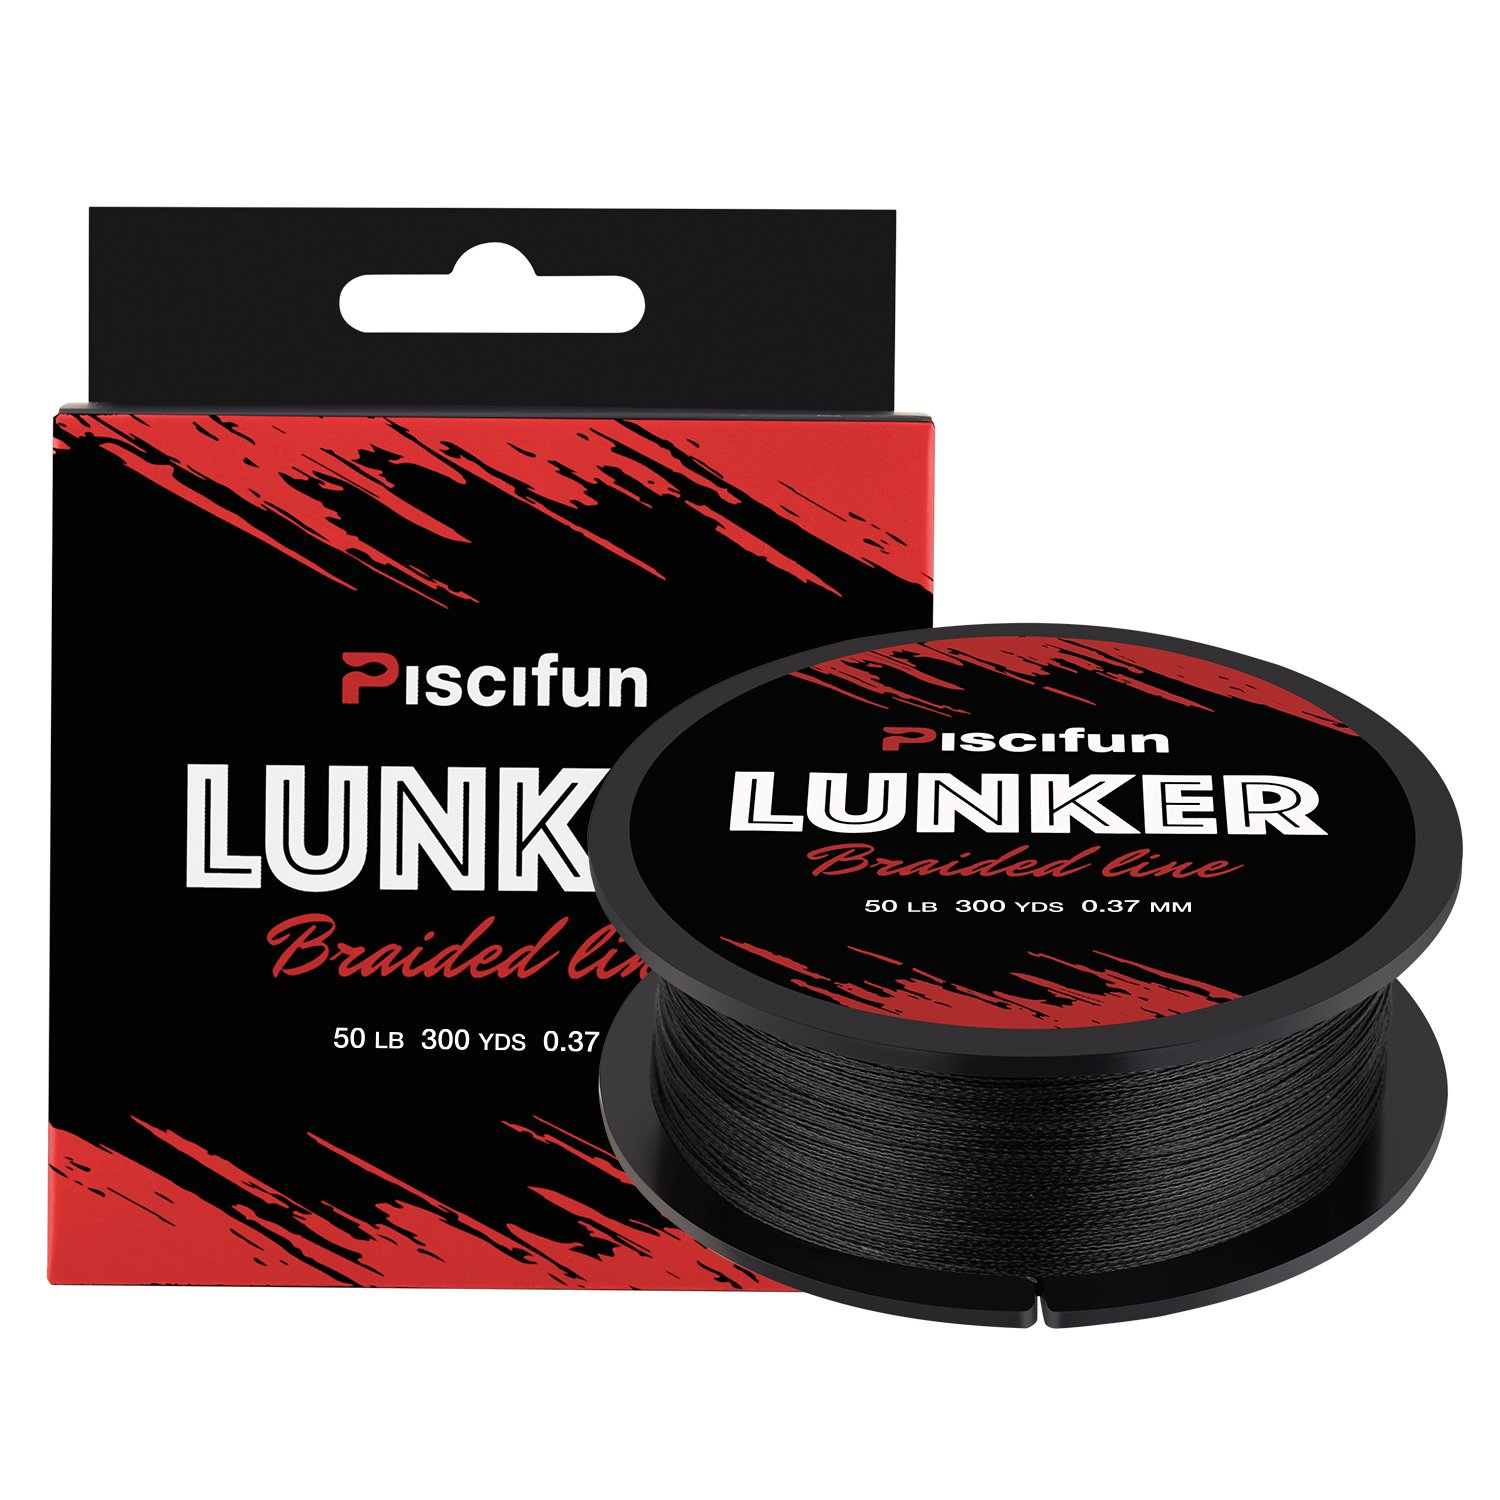 Amazon.com : Piscifun Lunker Braided Fishing Line Multifilament ...